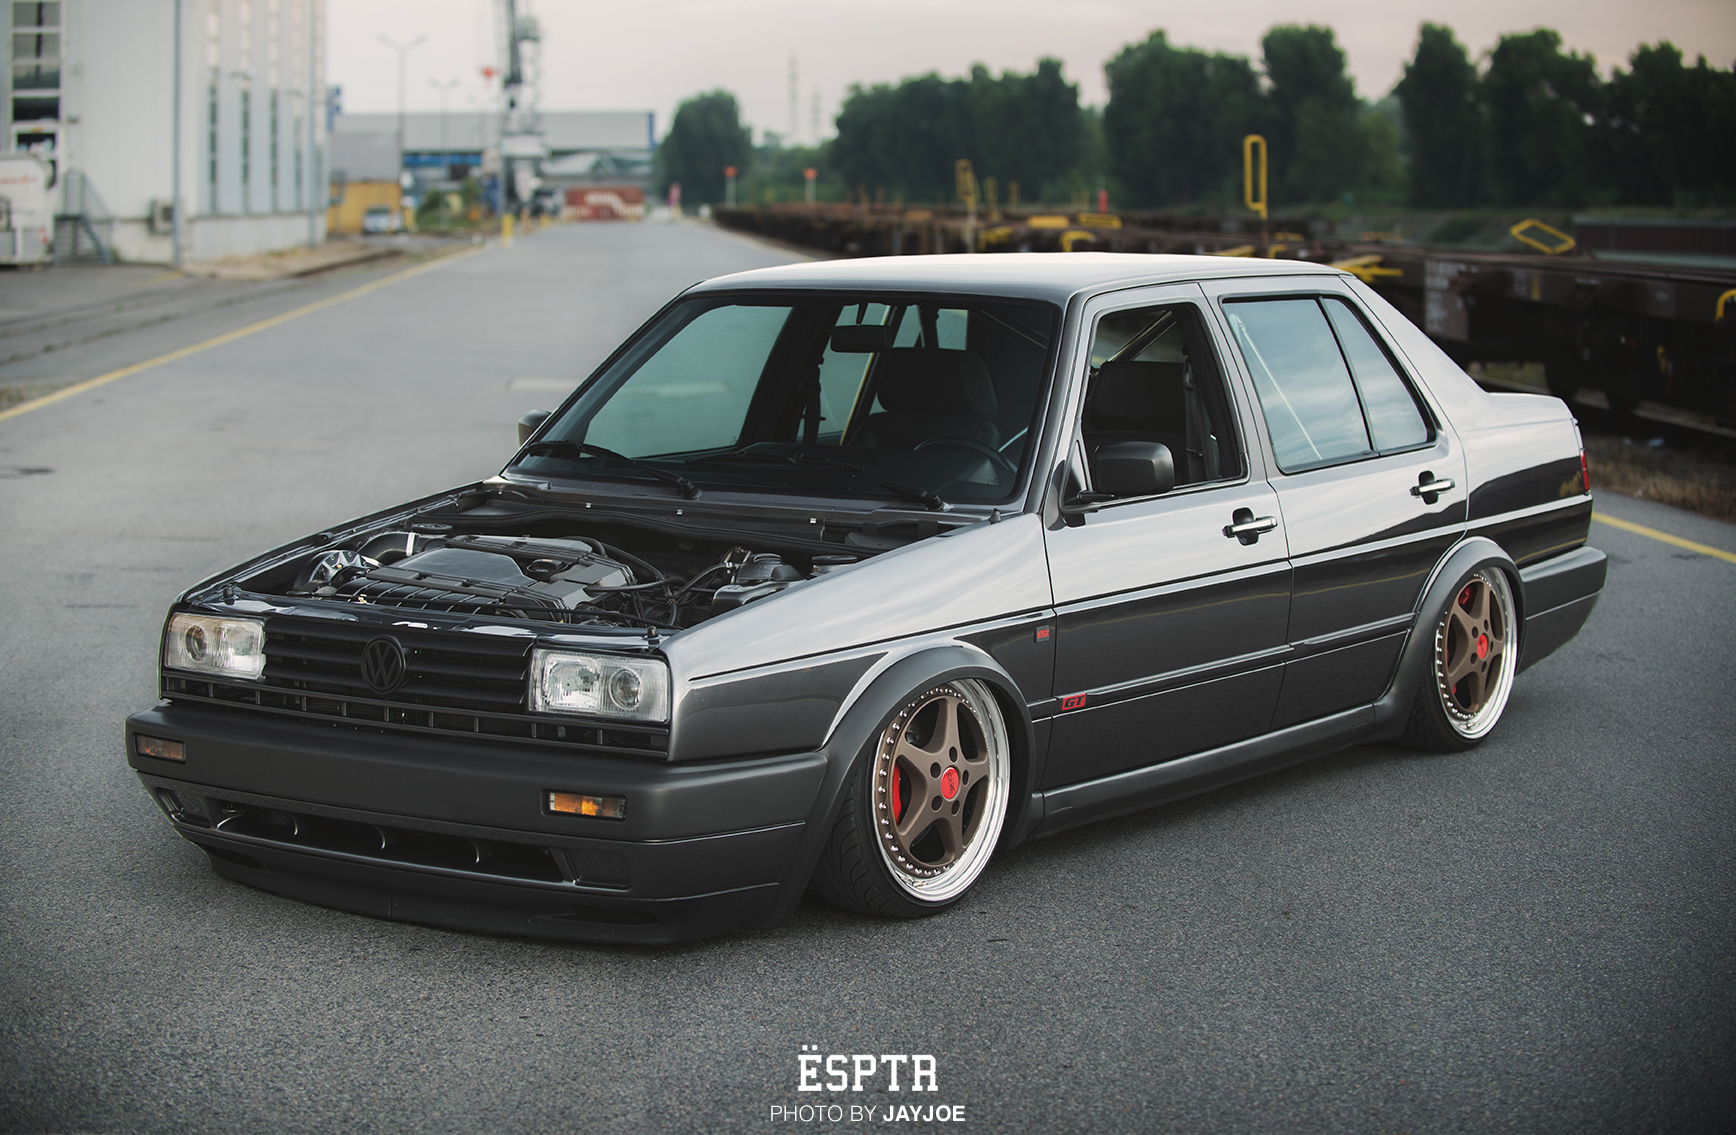 Thoughts On This Golf R furthermore Vw Golf Mk3 Tuning Pictures in addition Volkswagen Golf Gti R32 Automobiles Cars Transportation Vehicles Wallpaper 53750 also Vw Jetta Mk2 moreover 18204500485. on golf mk7 us